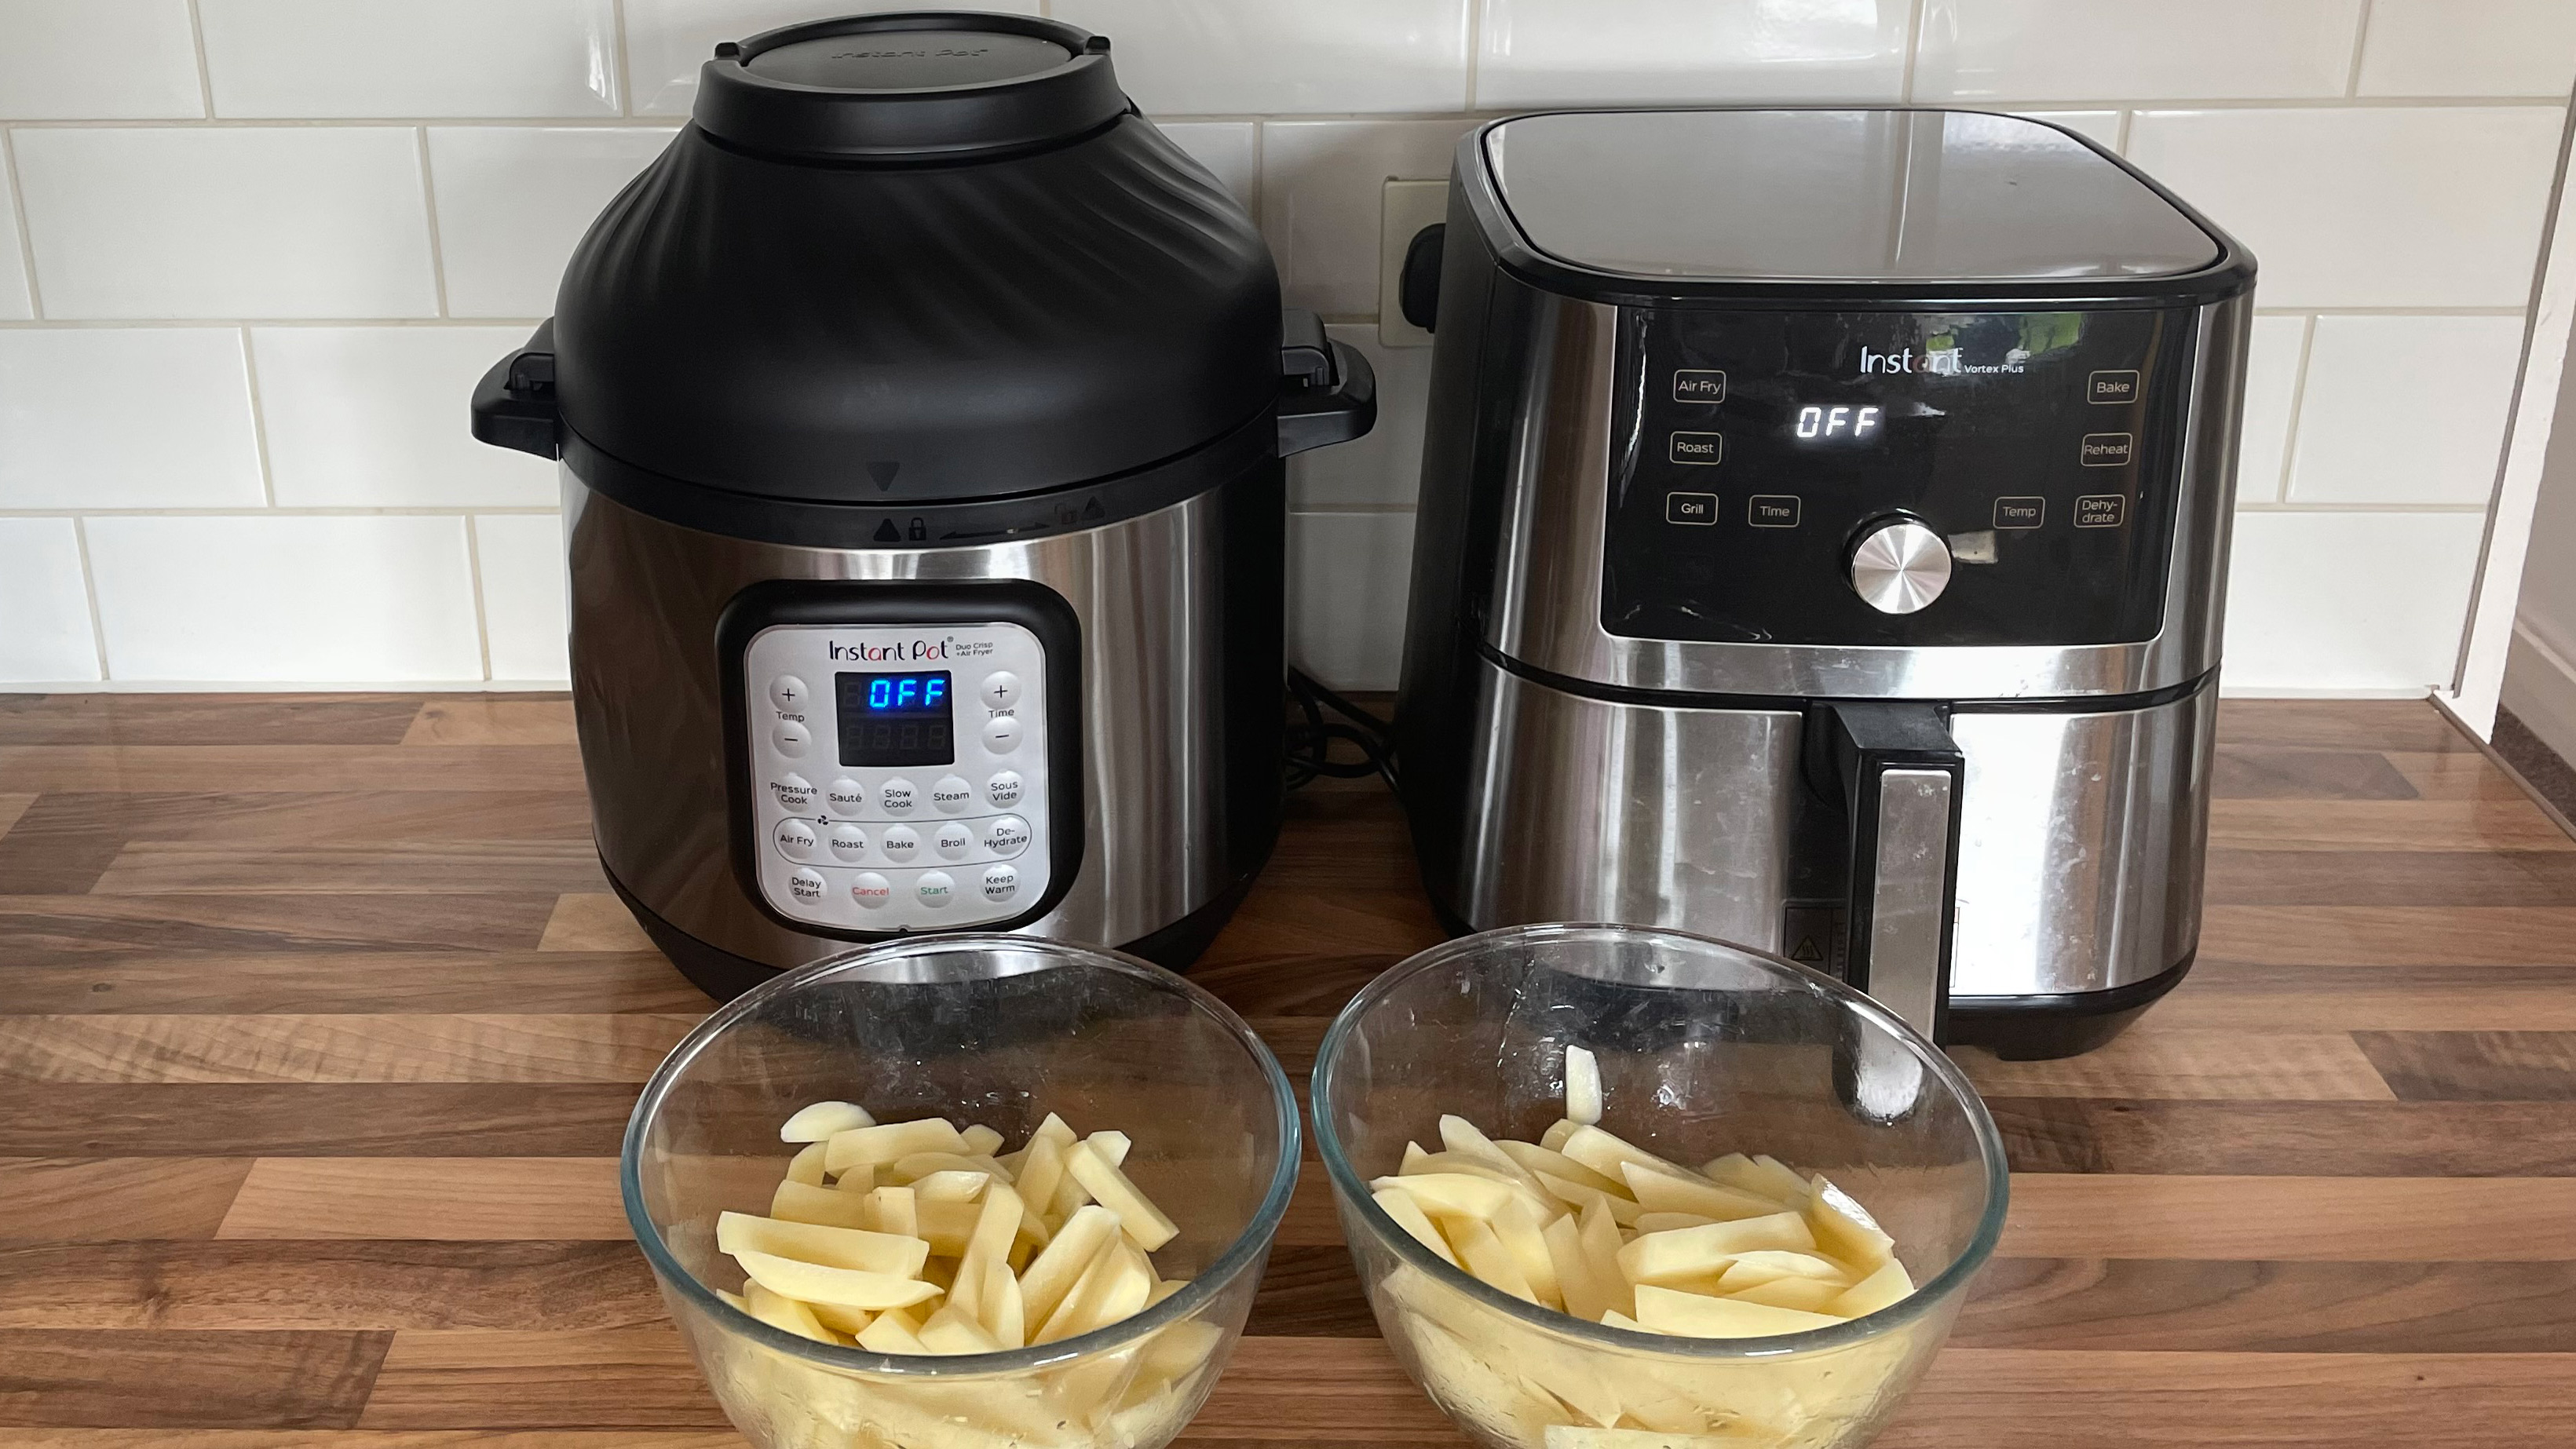 An Instant Pot Duo Crisp & Air Fryer with an Instant Vortex Plus air fryer on a kitchen counterytop and bowl of potato ready to be air fried into fries